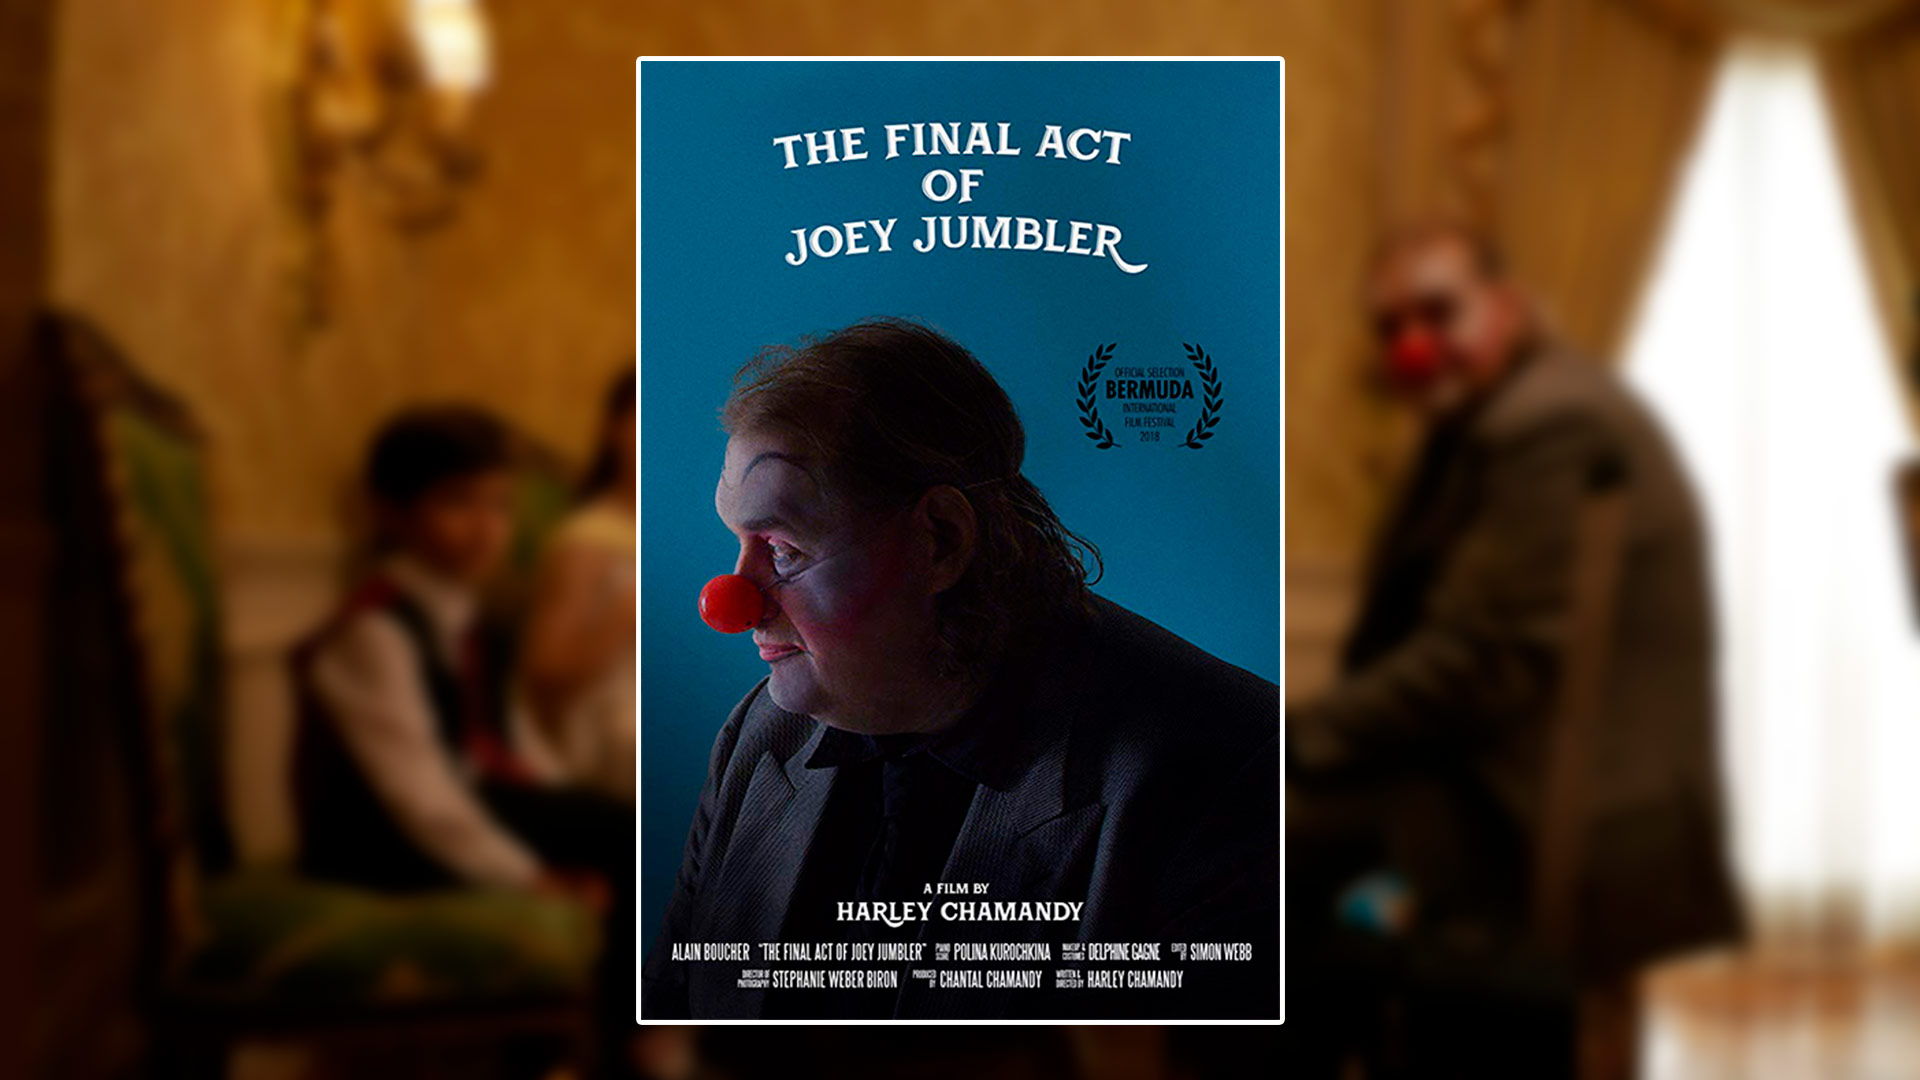 The Final Act of Joey Jumbler